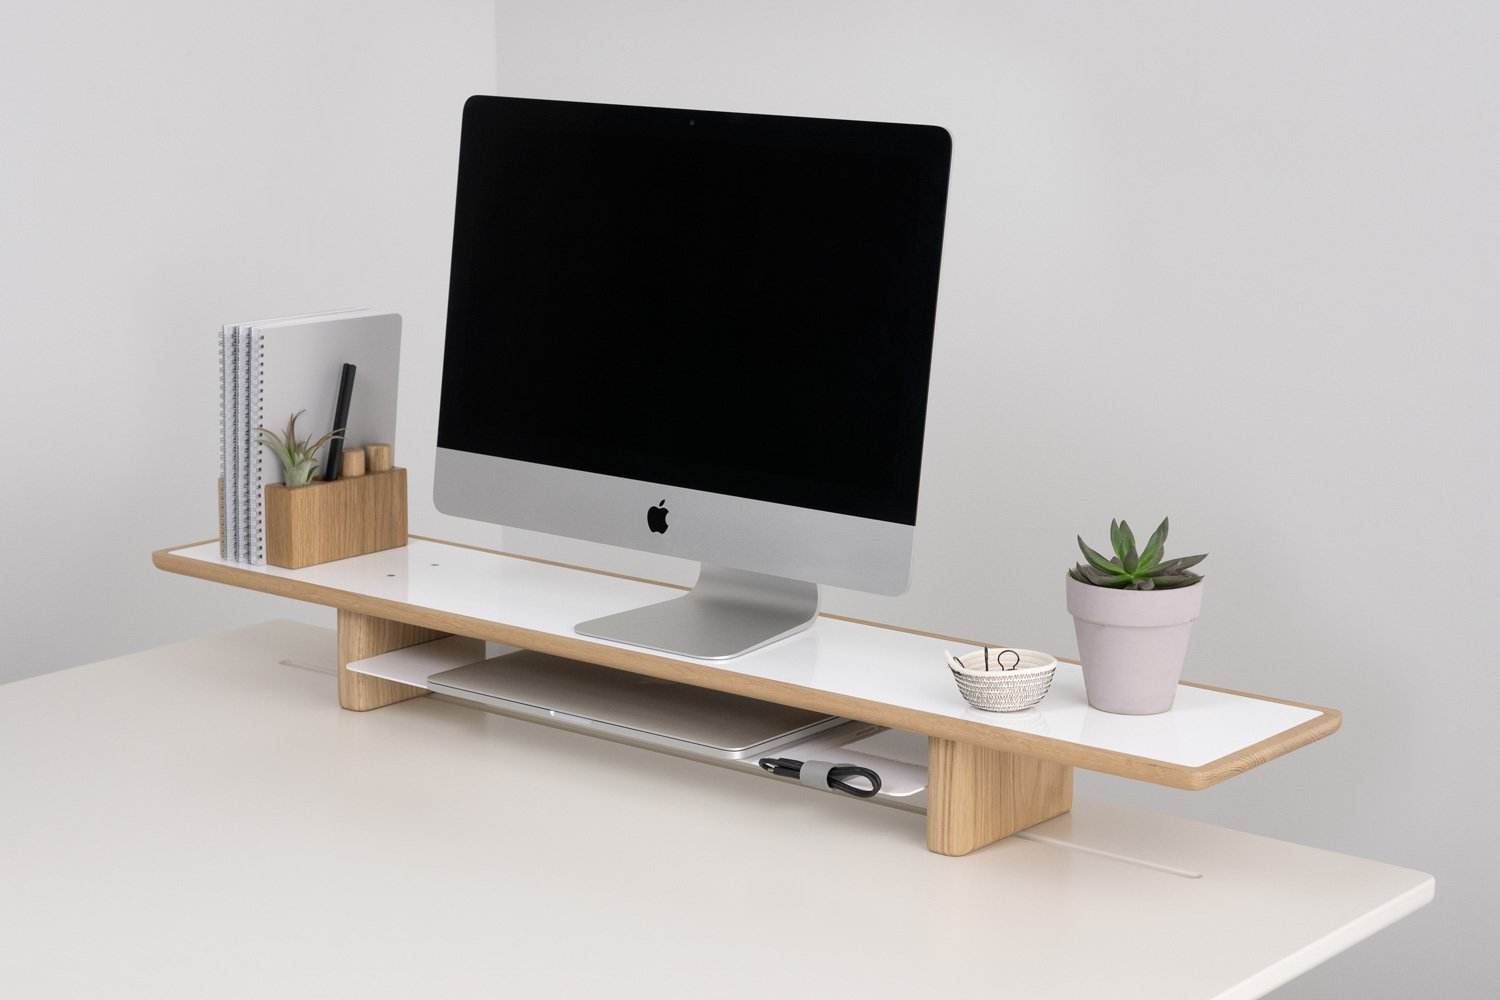 Lift In 2020 White Desk Setup Home Room Design Desk Storage